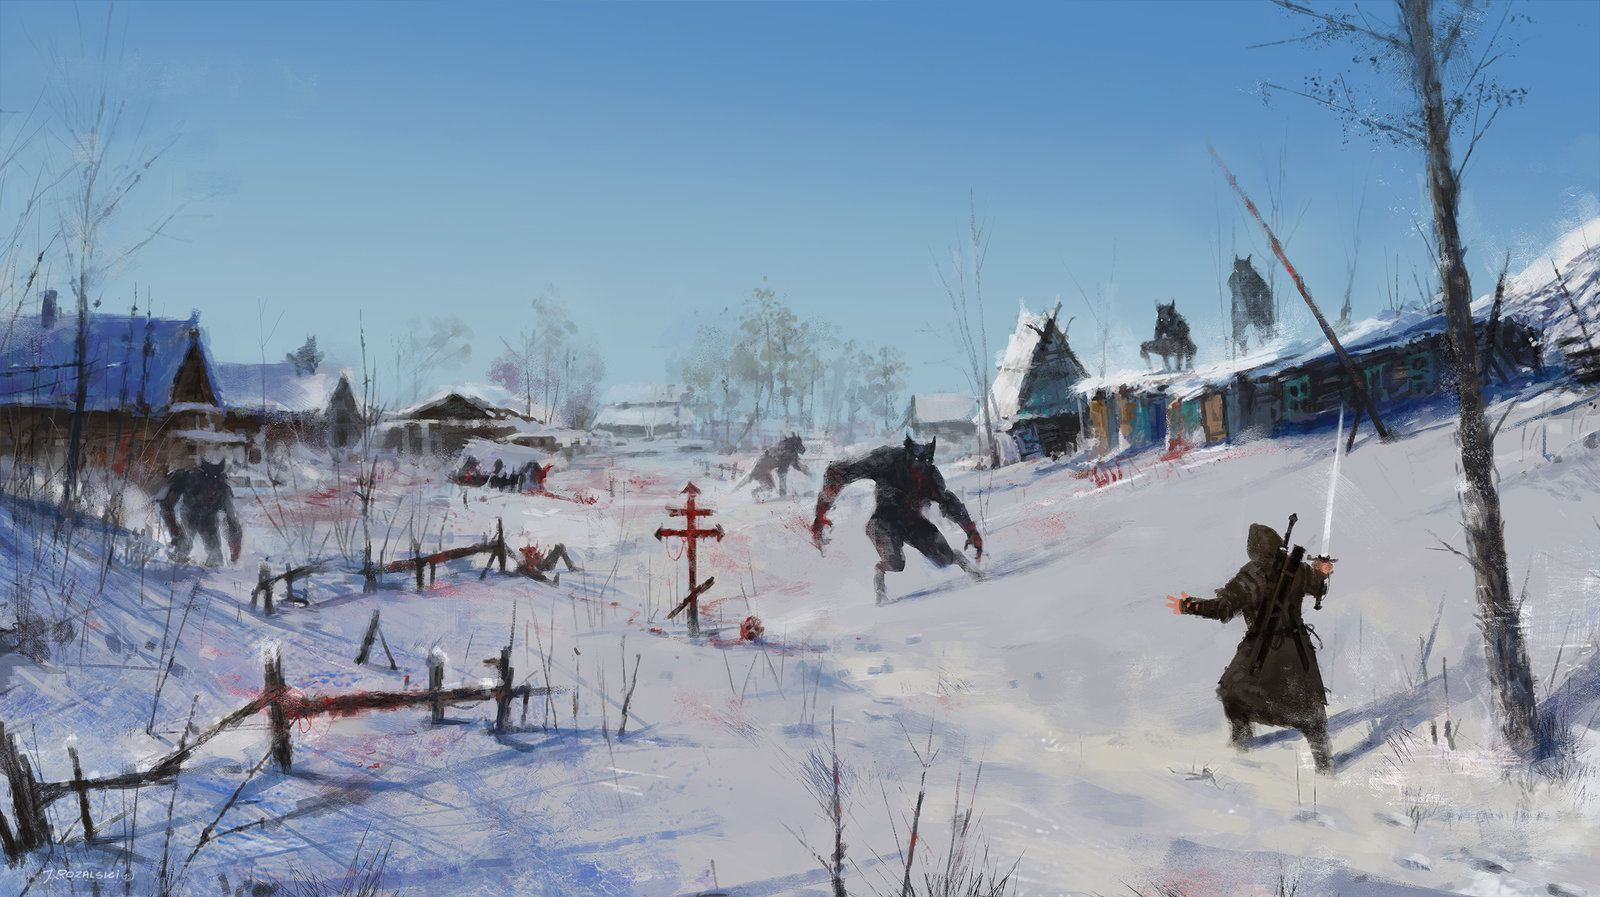 very severe winter..., Jakub Rozalski on ArtStation at https://www.artstation.com/artwork/very-severe-winter